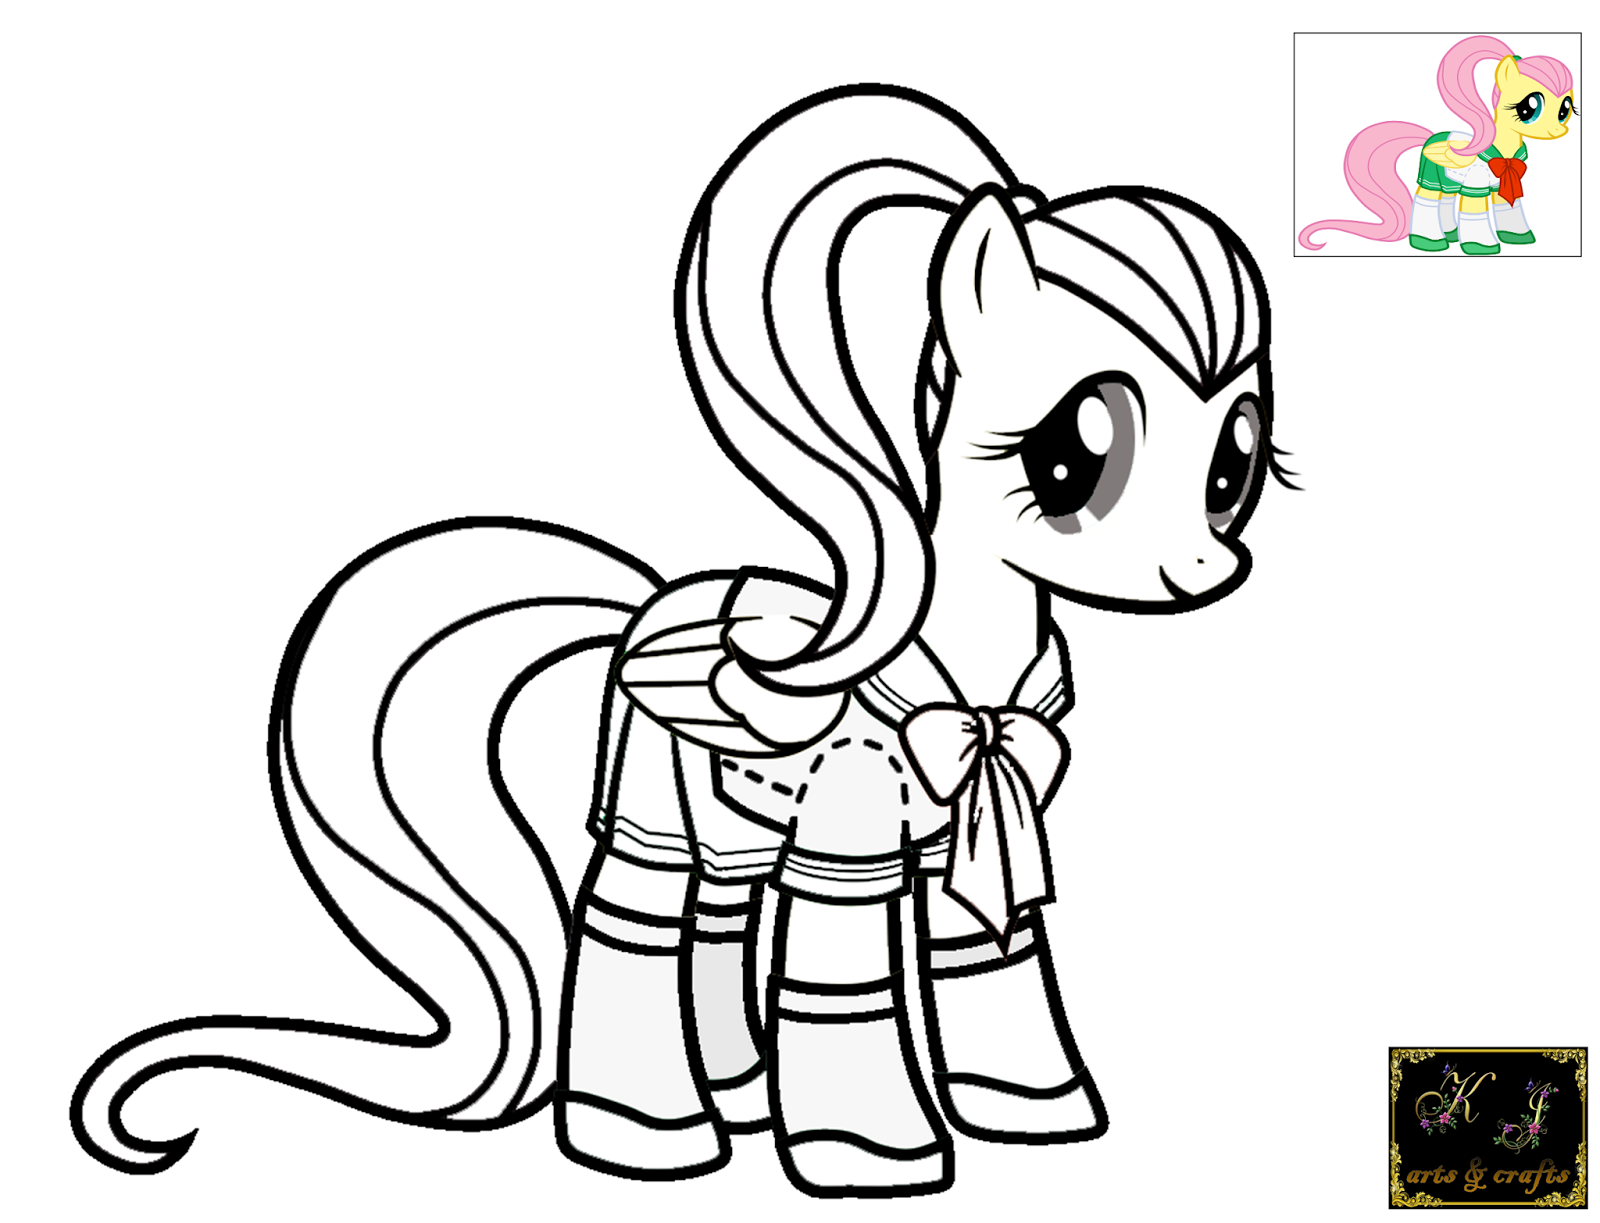 Kj coloring pages fluttershy for My little pony fluttershy coloring pages